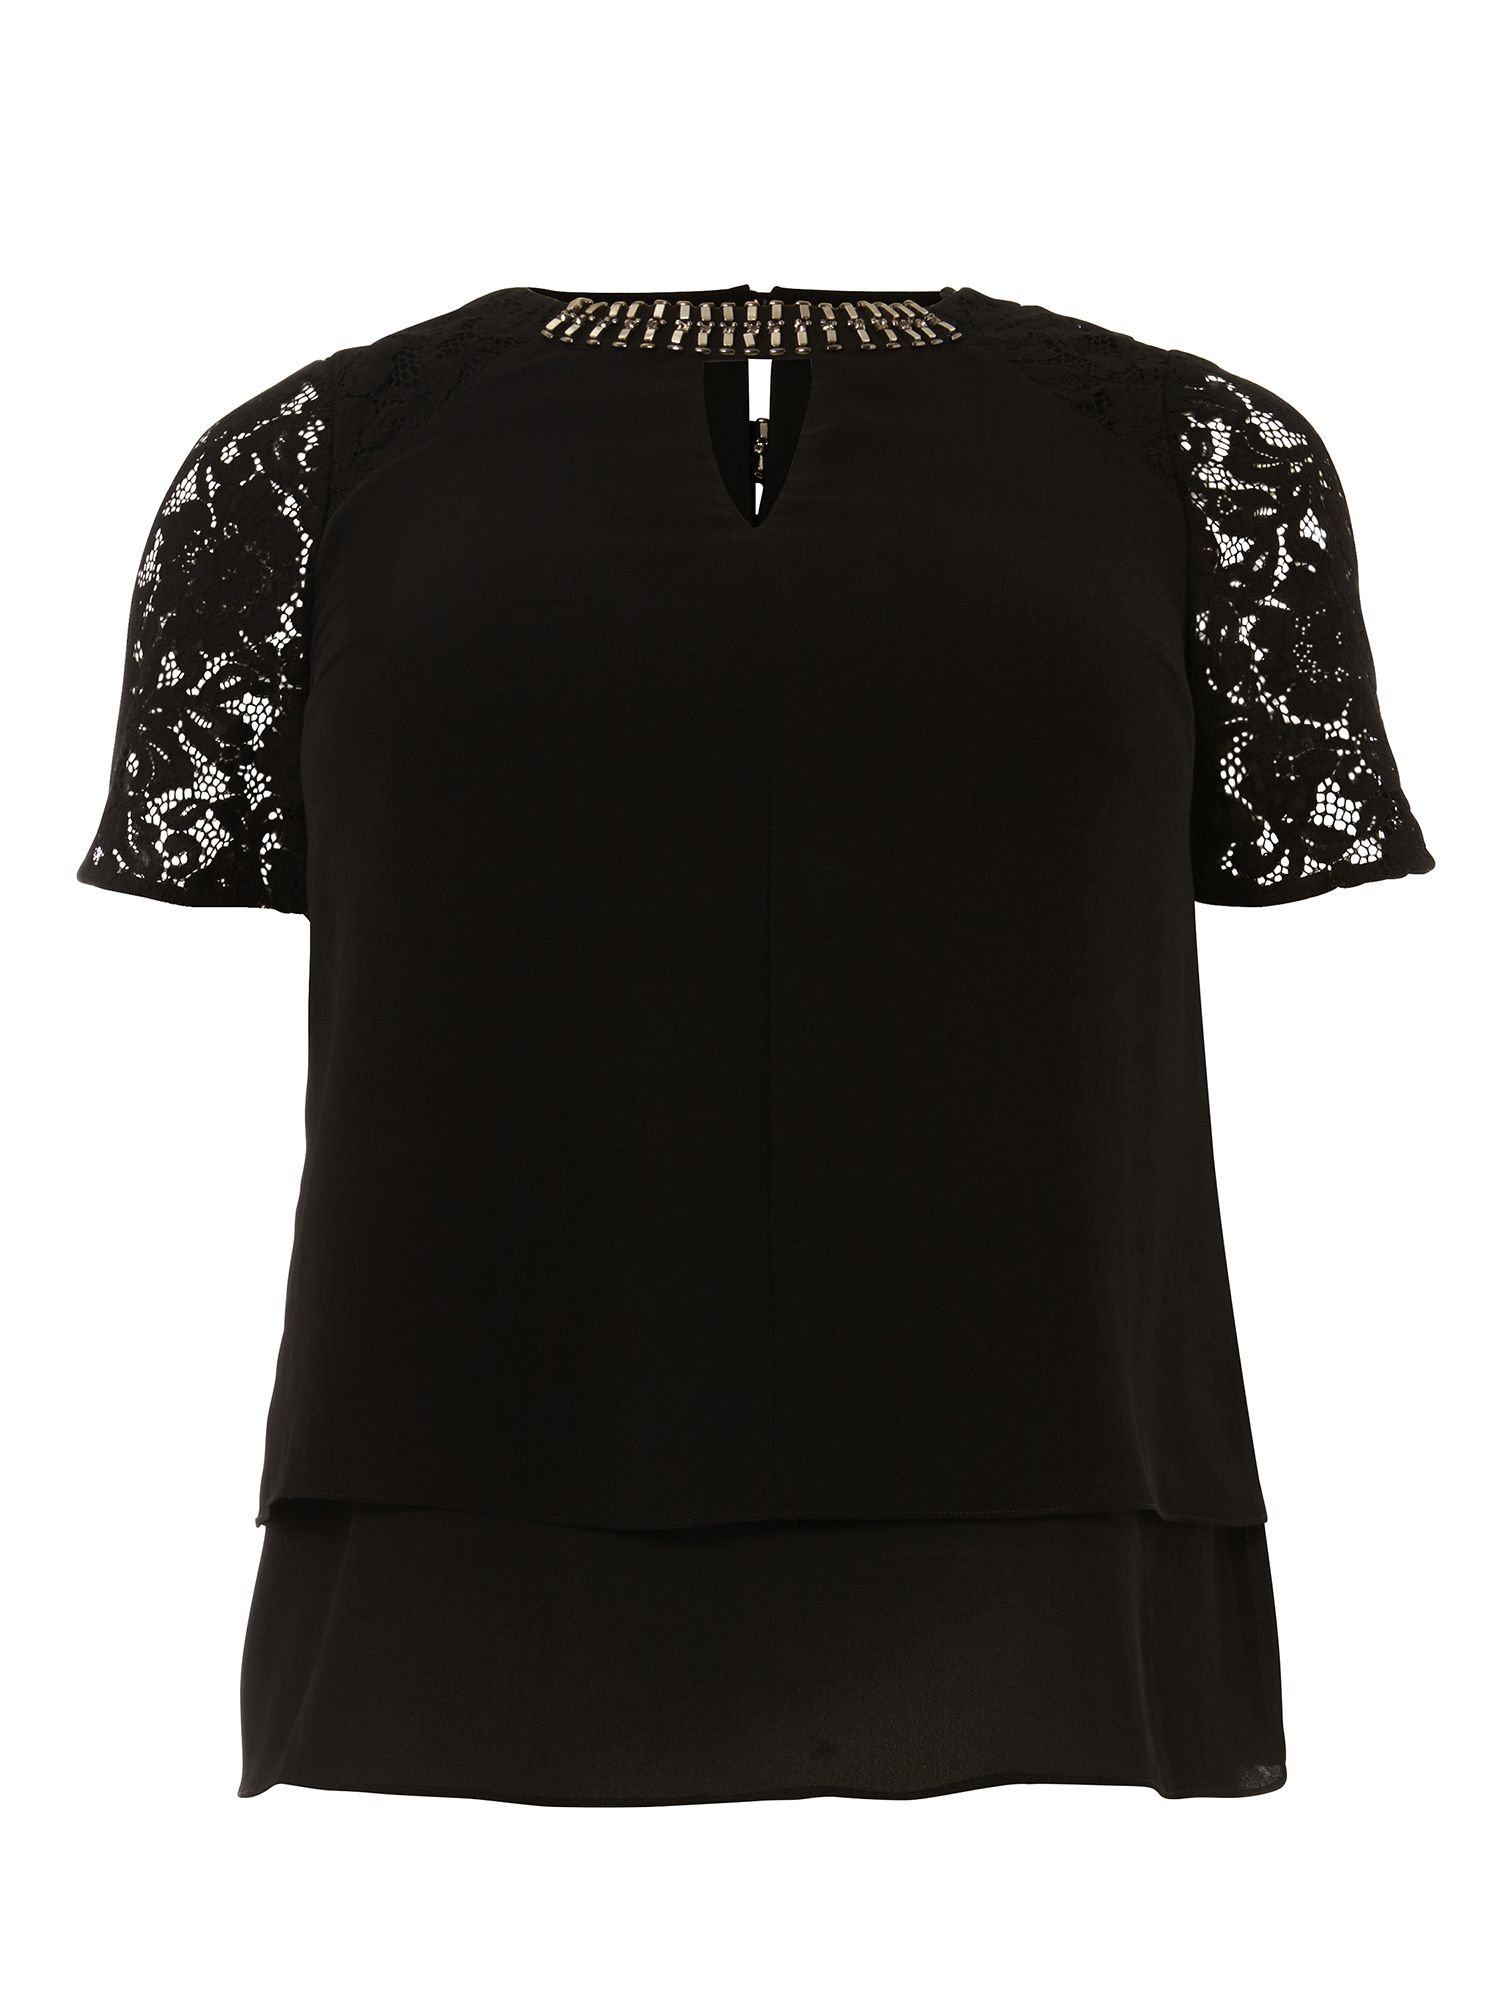 Studio 8 Sasha Top, Black